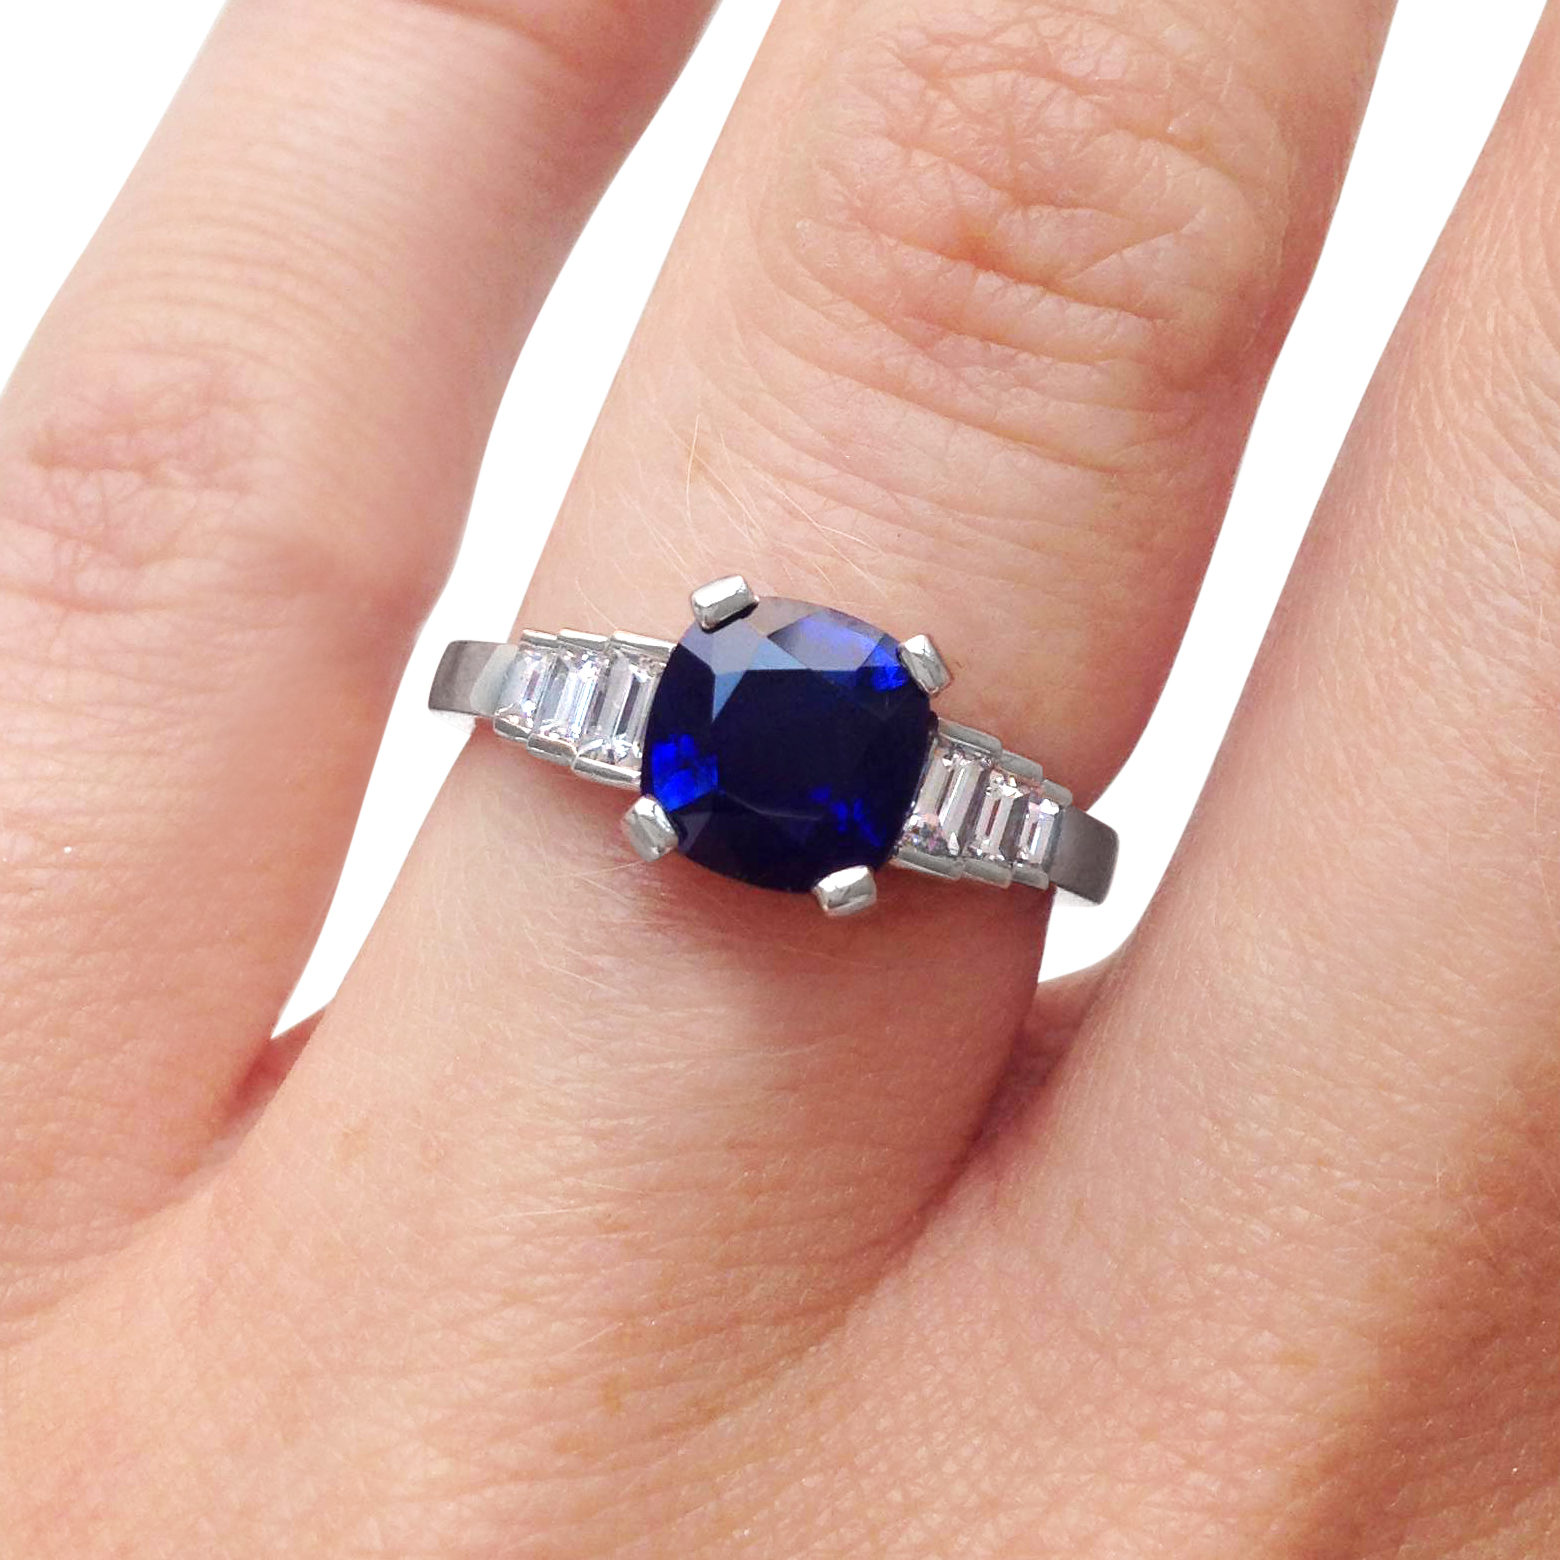 cushion-shpaed-sapphire-and-diamond-baguette-cut-ring-mounted-in-platinum.jpg